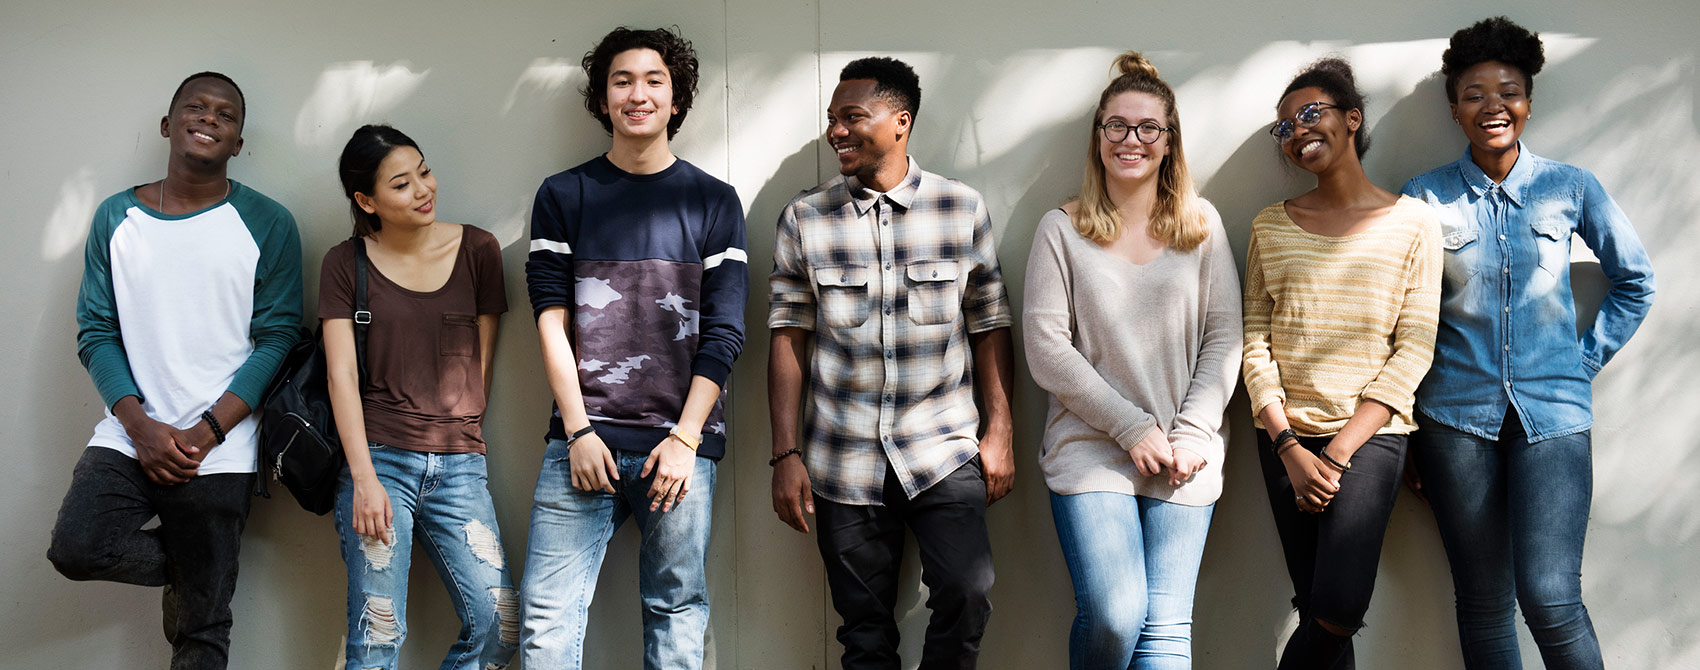 A group of collage students in casual clothes laughing together.